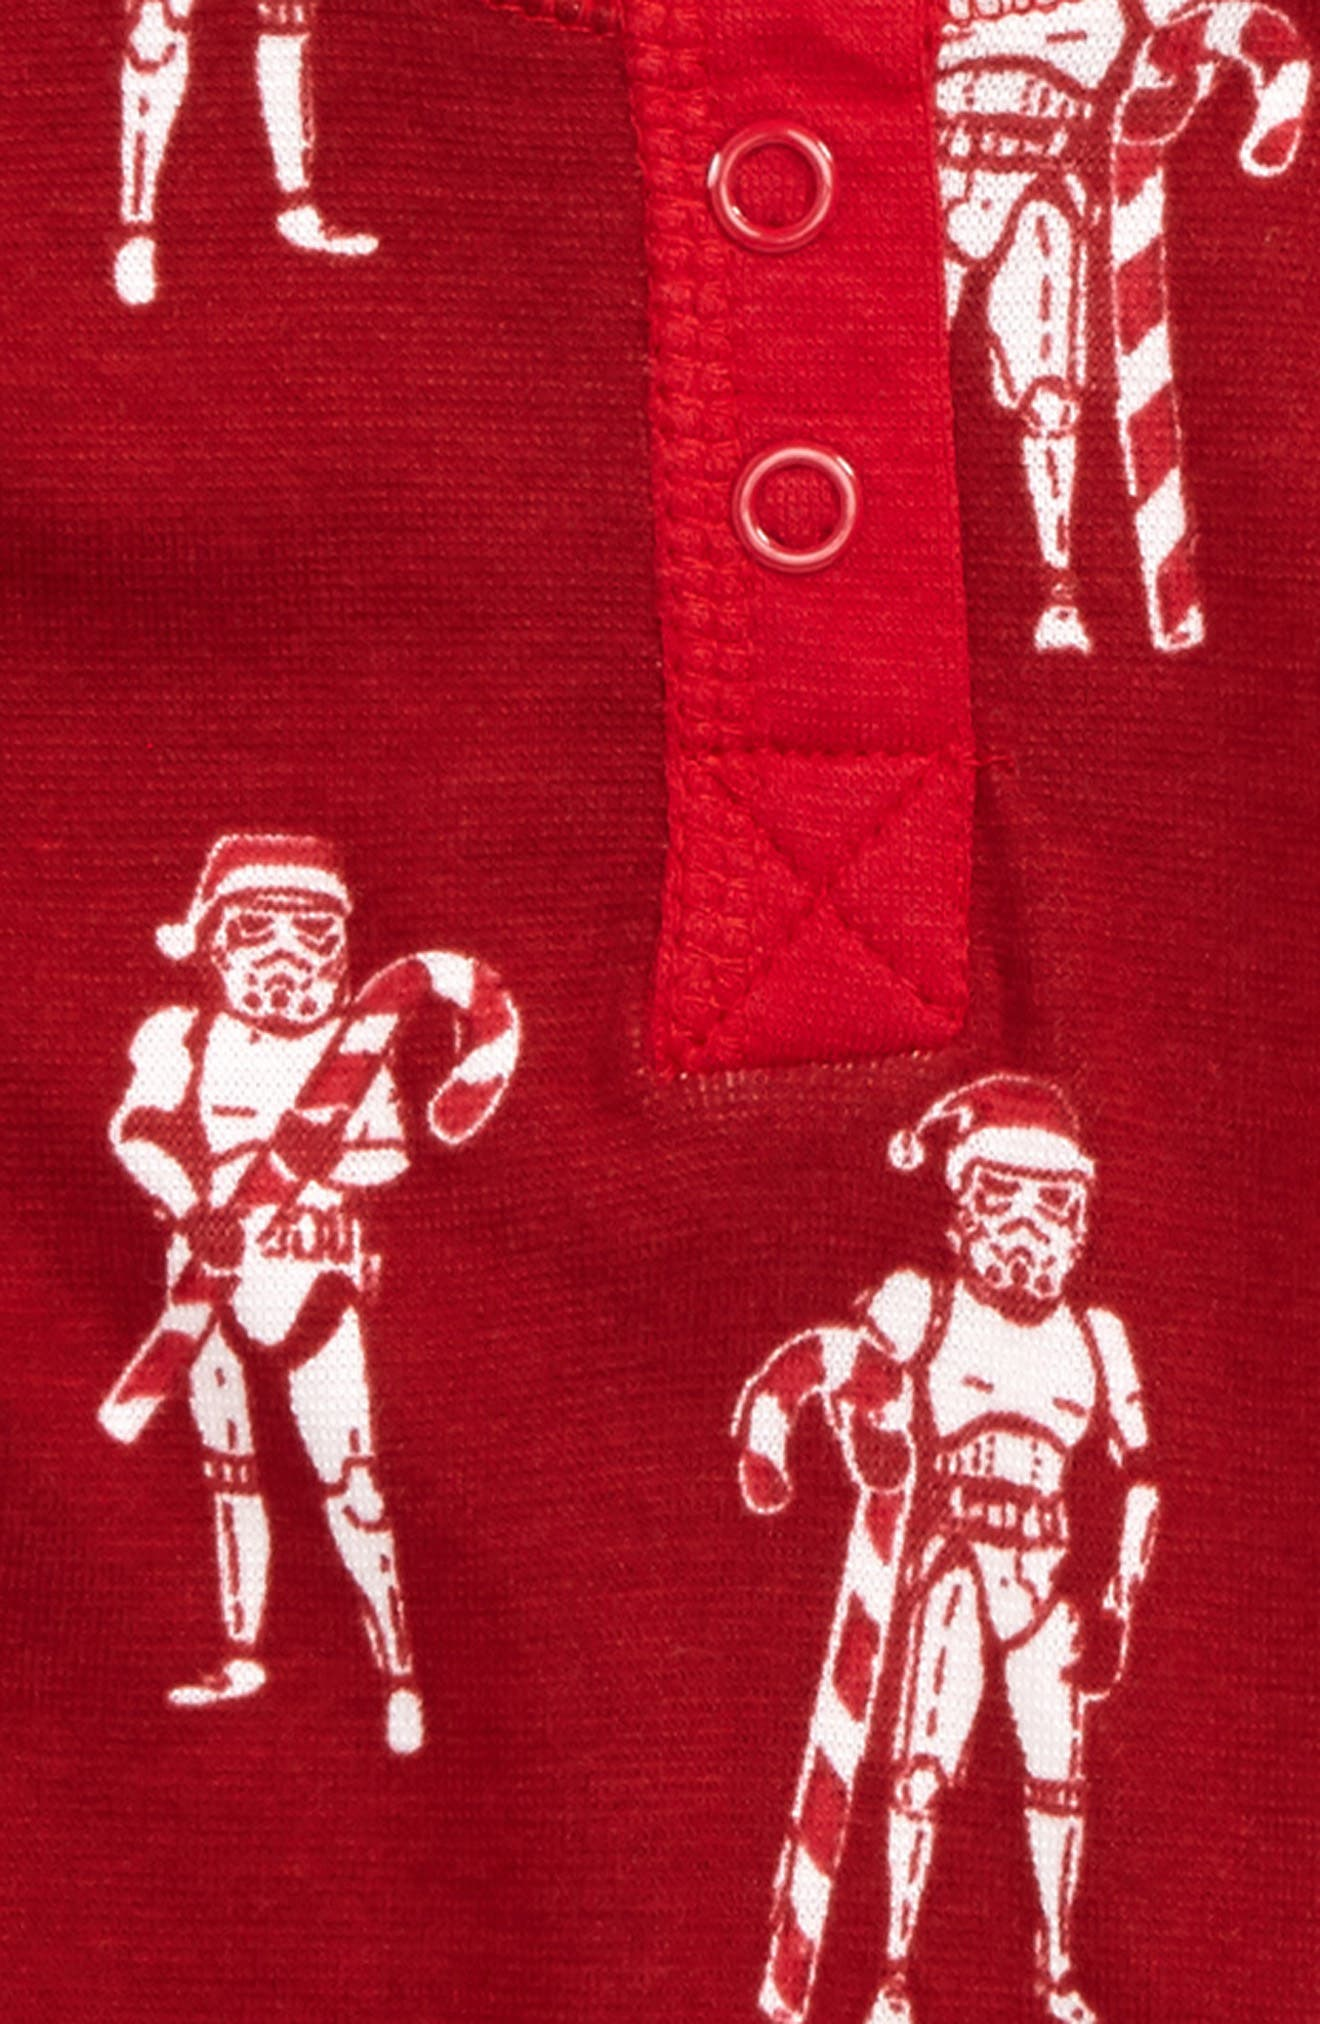 Alternate Image 2  - Munki Munki Star Wars™ - Stormtroopers Fitted Two-Piece Pajamas (Toddler Boys, Little Boys & Big Boys)